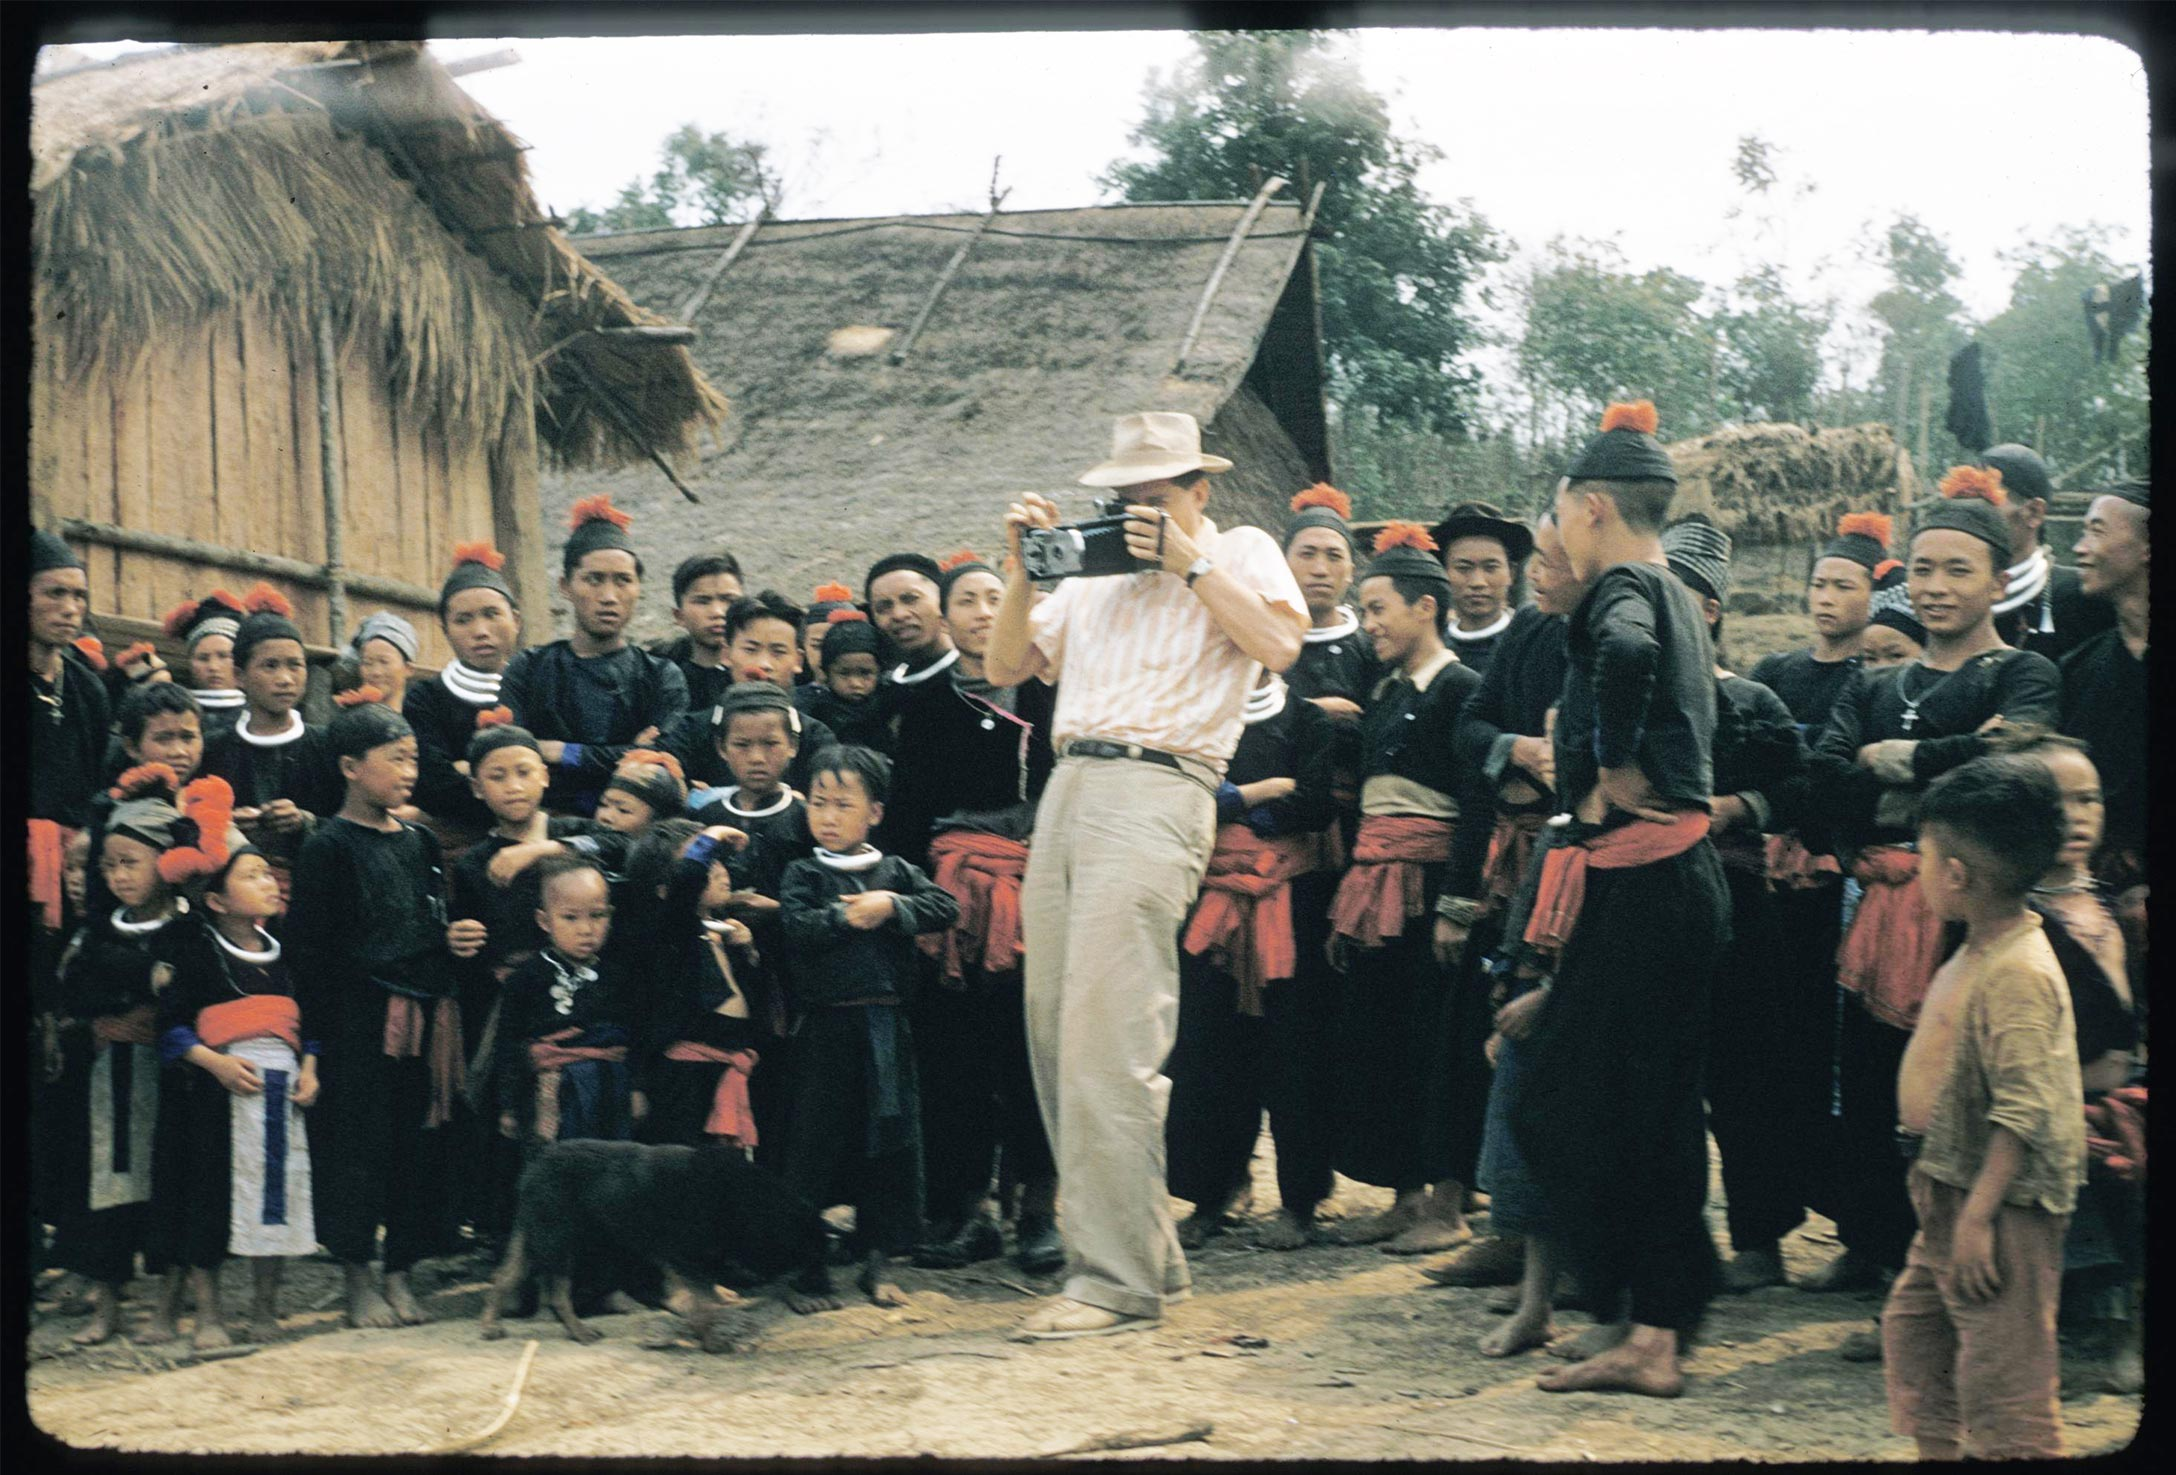 Joel Halpern photographing a wedding during one of his research trips